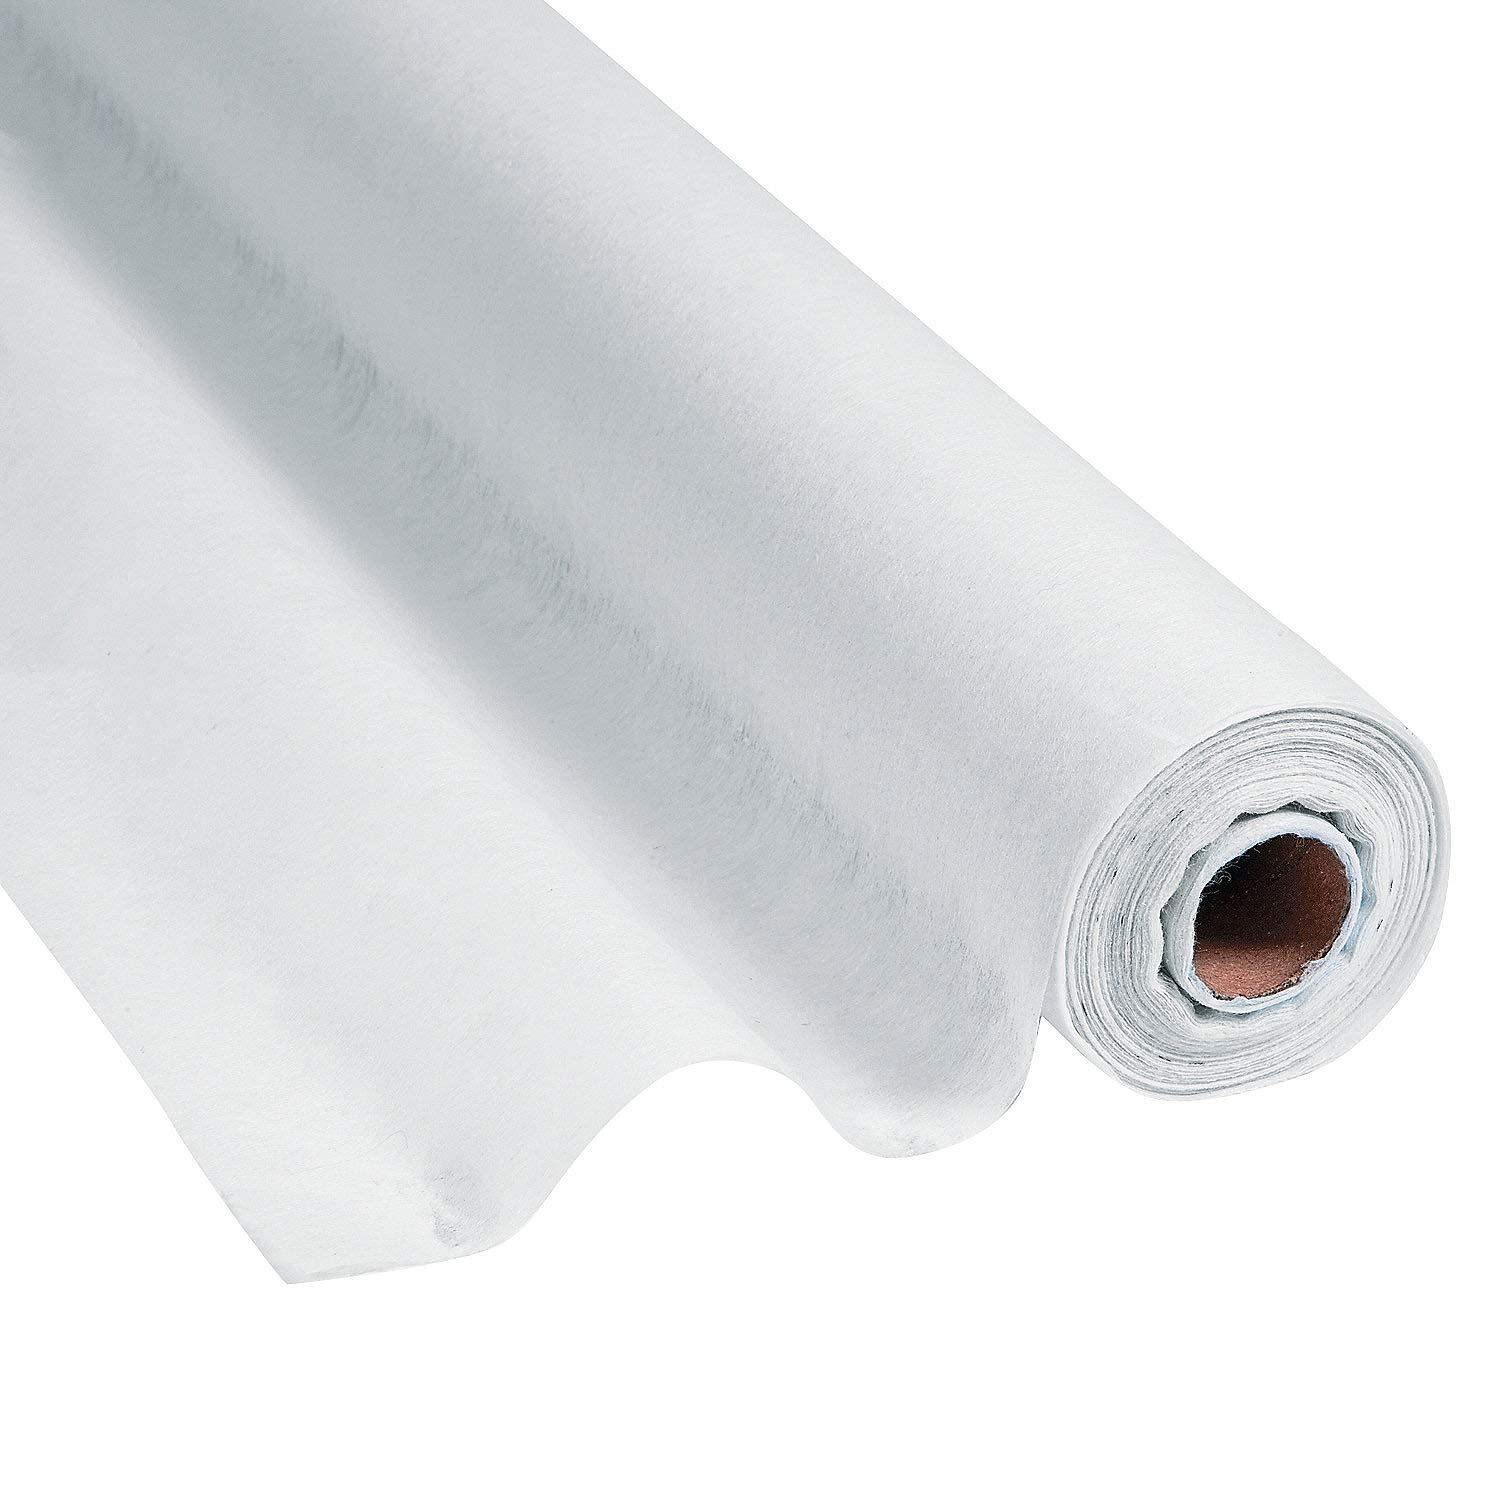 Fun Express White Gossamer Roll 100 FT x 3 FT-Prom & Wedding Decor-Party Supplies-1 Roll by Fun Express